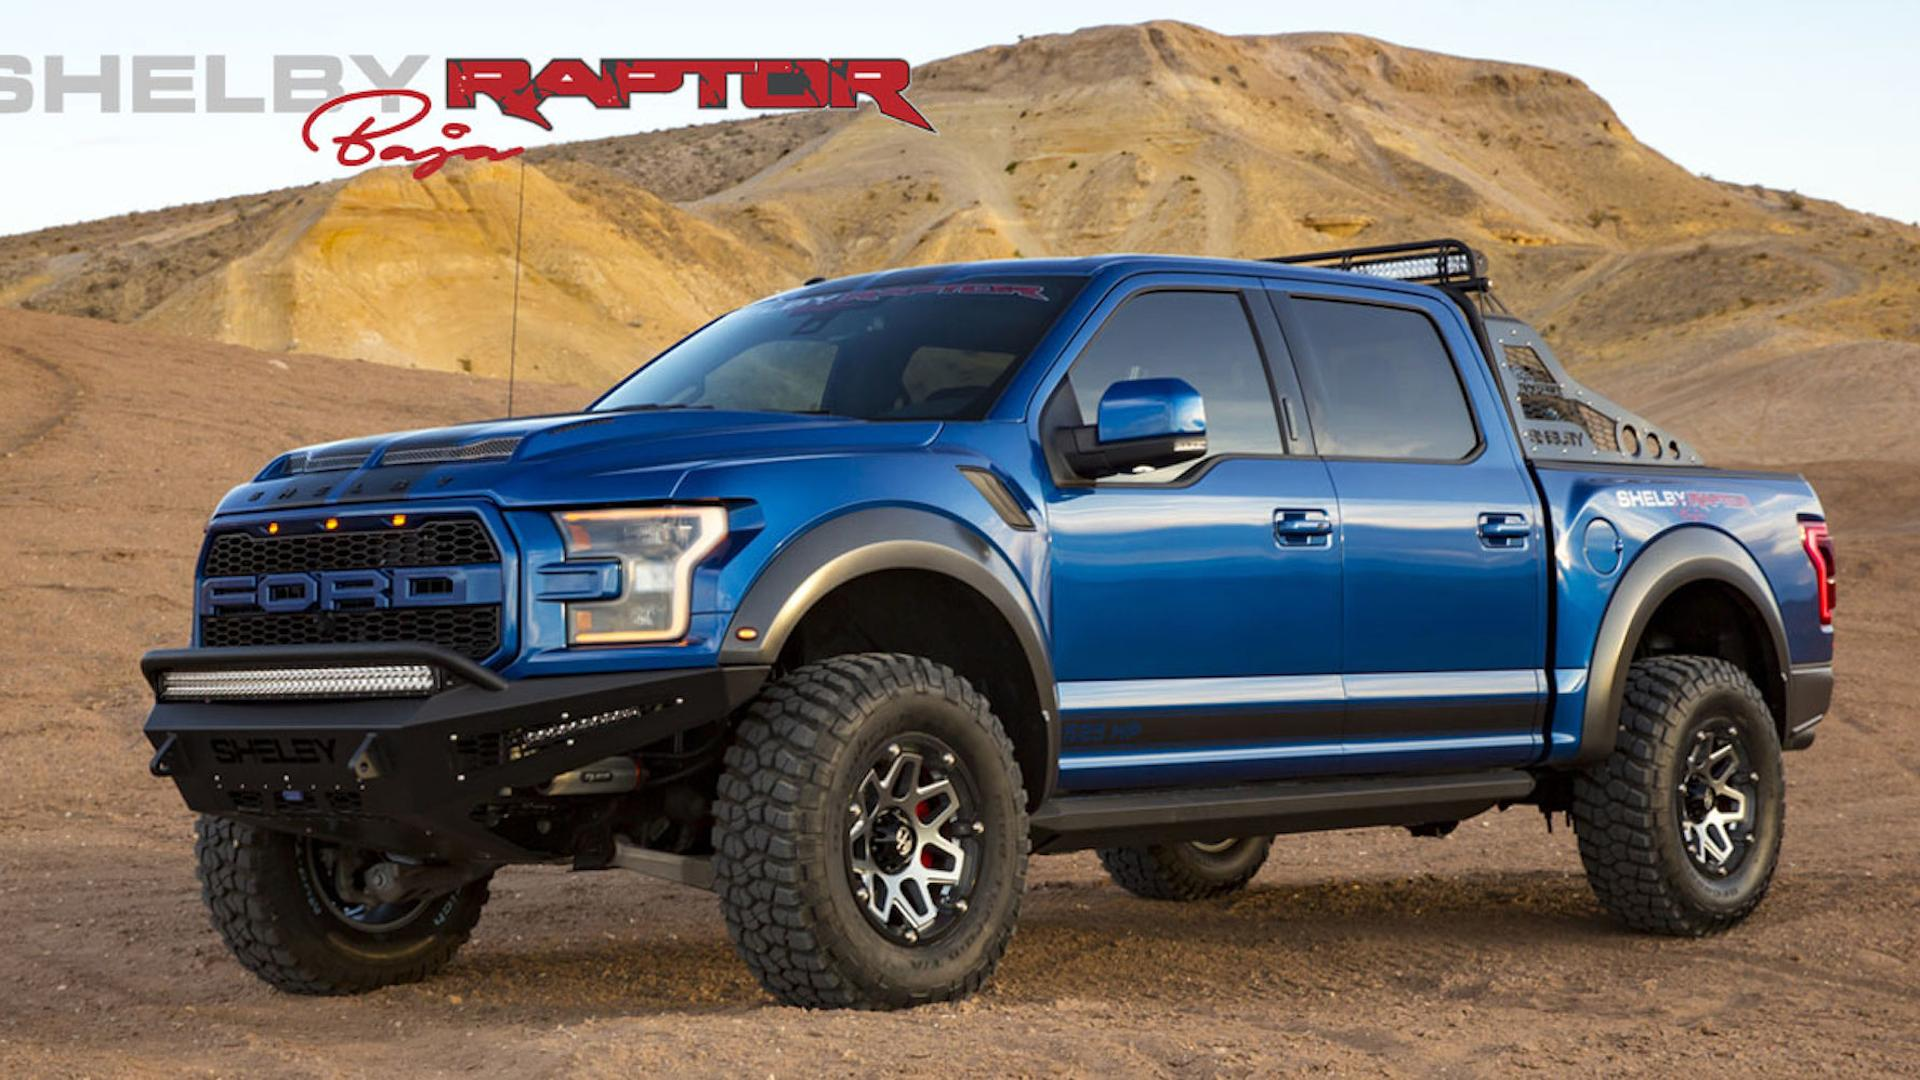 Shelbys rugged ford raptor baja packs 525 hp